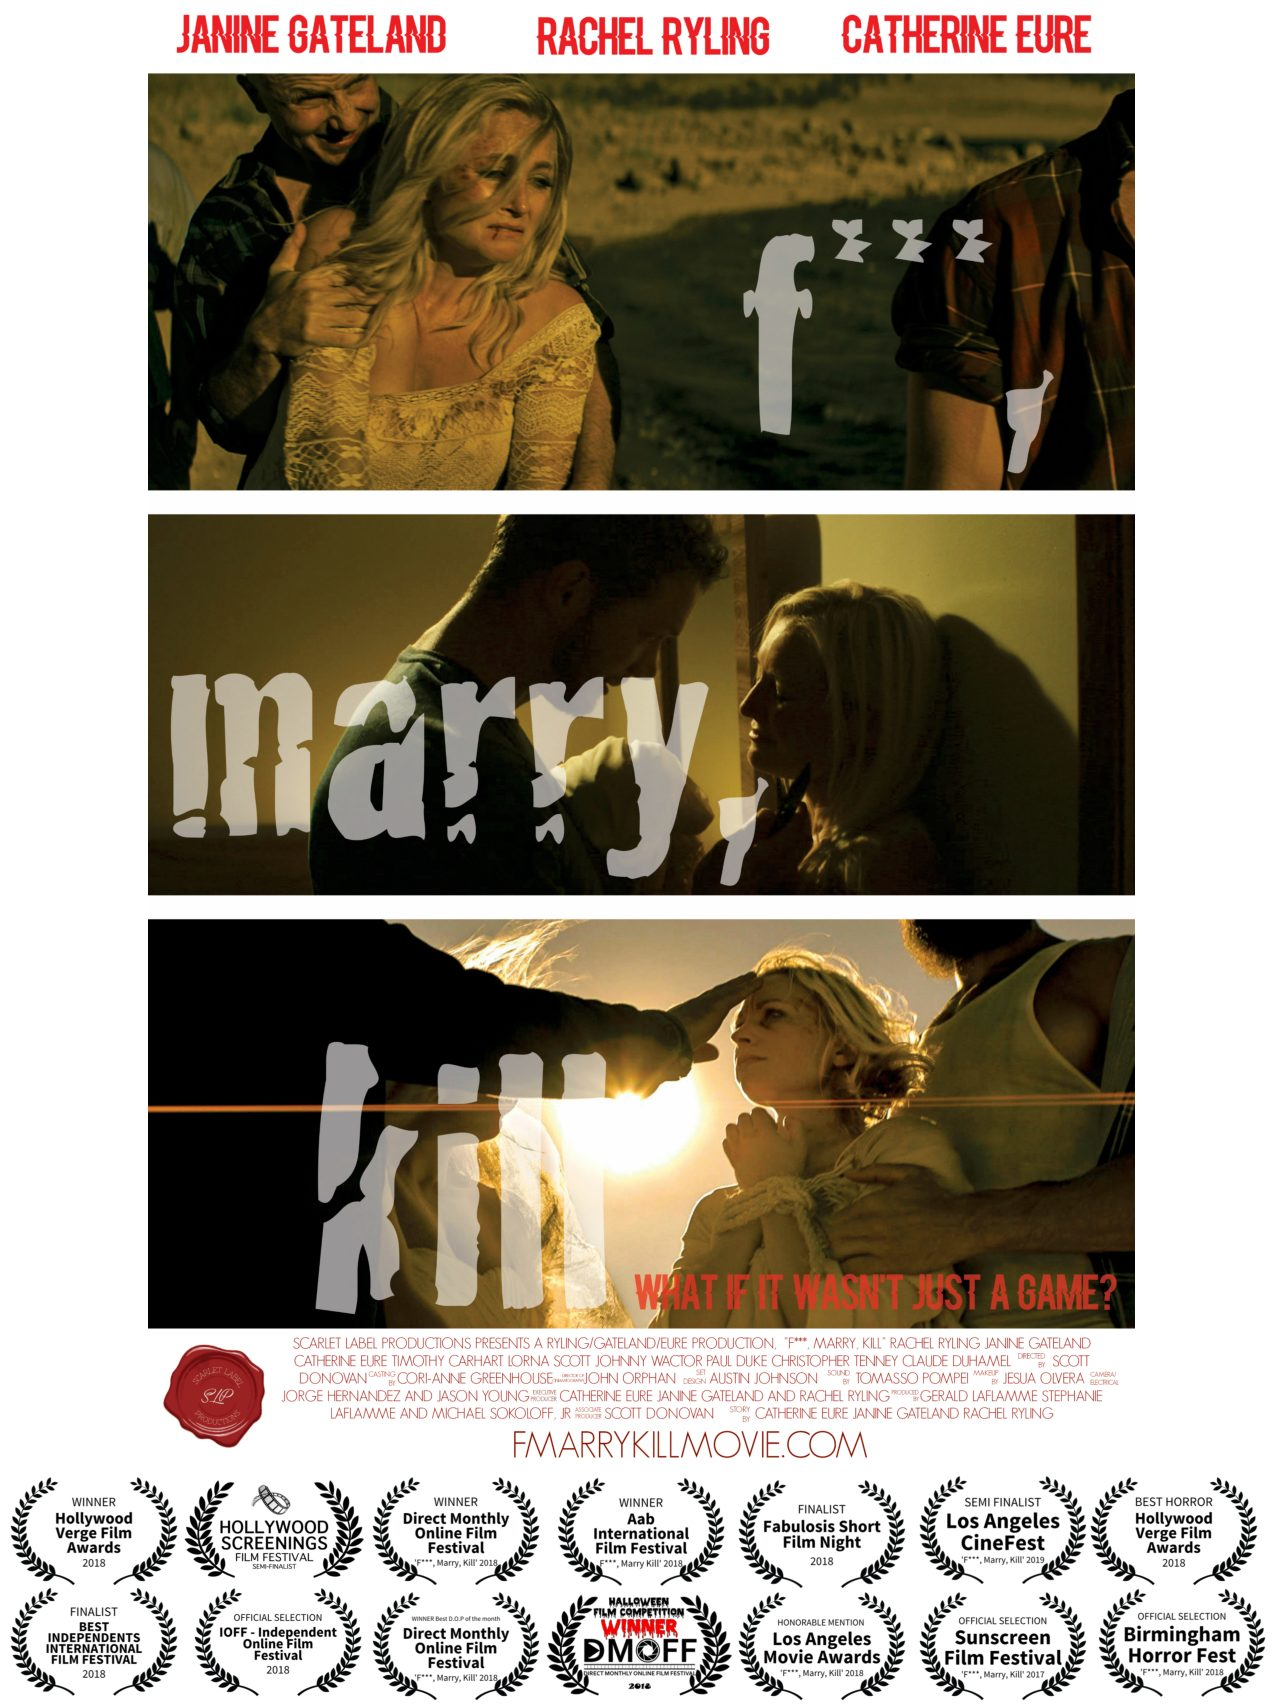 2015; F***, Marry, Kill – Film (COMPLETED – CURRENTLY ON FESTIVAL CIRCUIT)